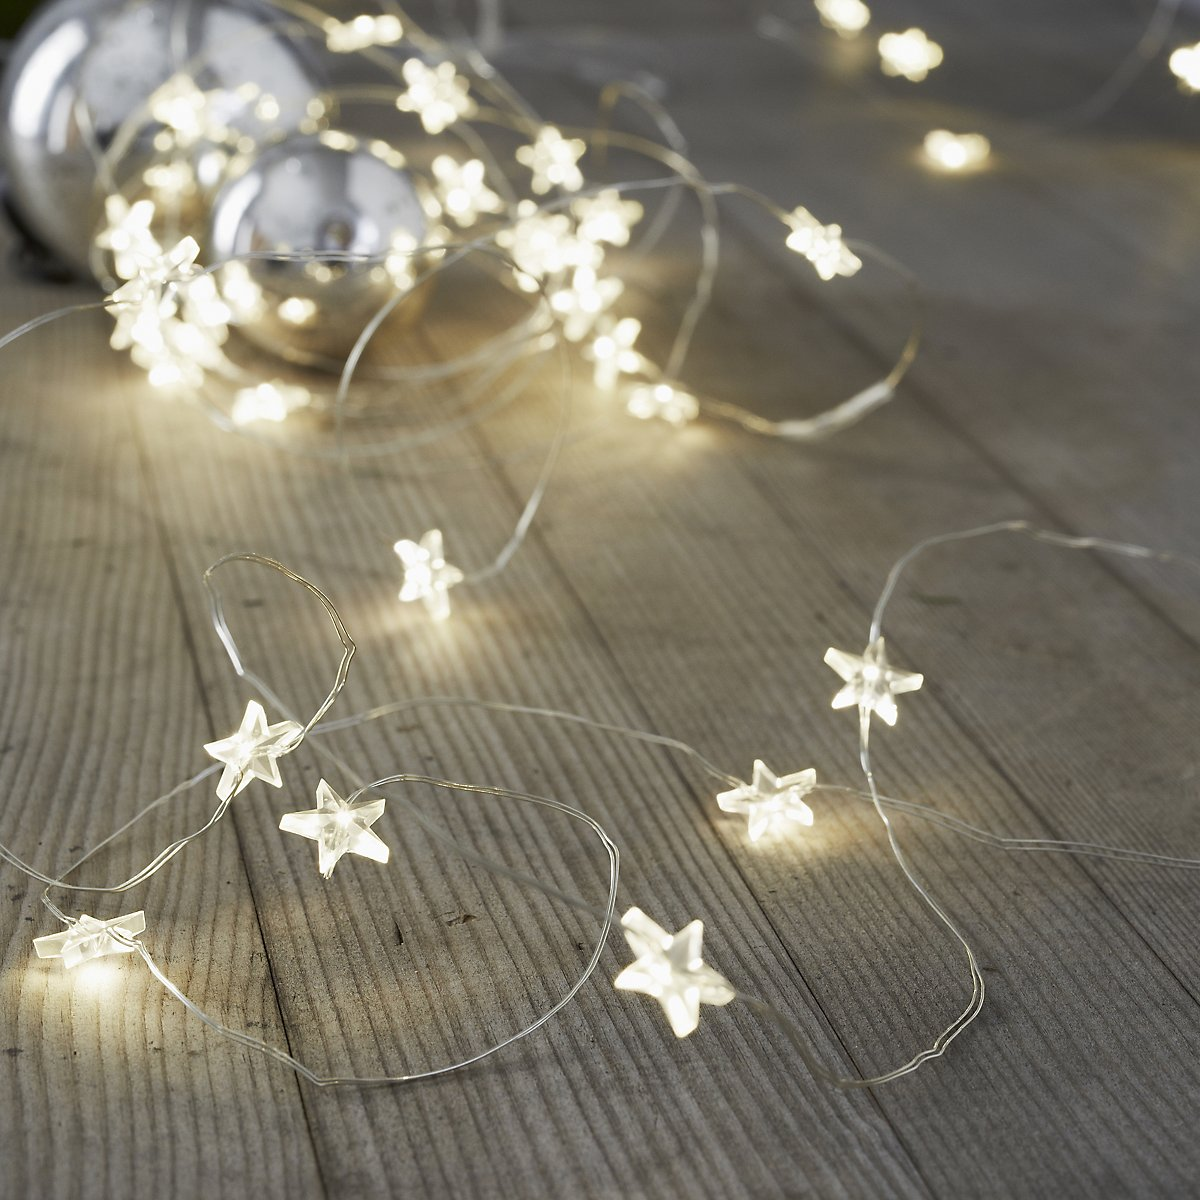 Star Fairy Lights £12.00